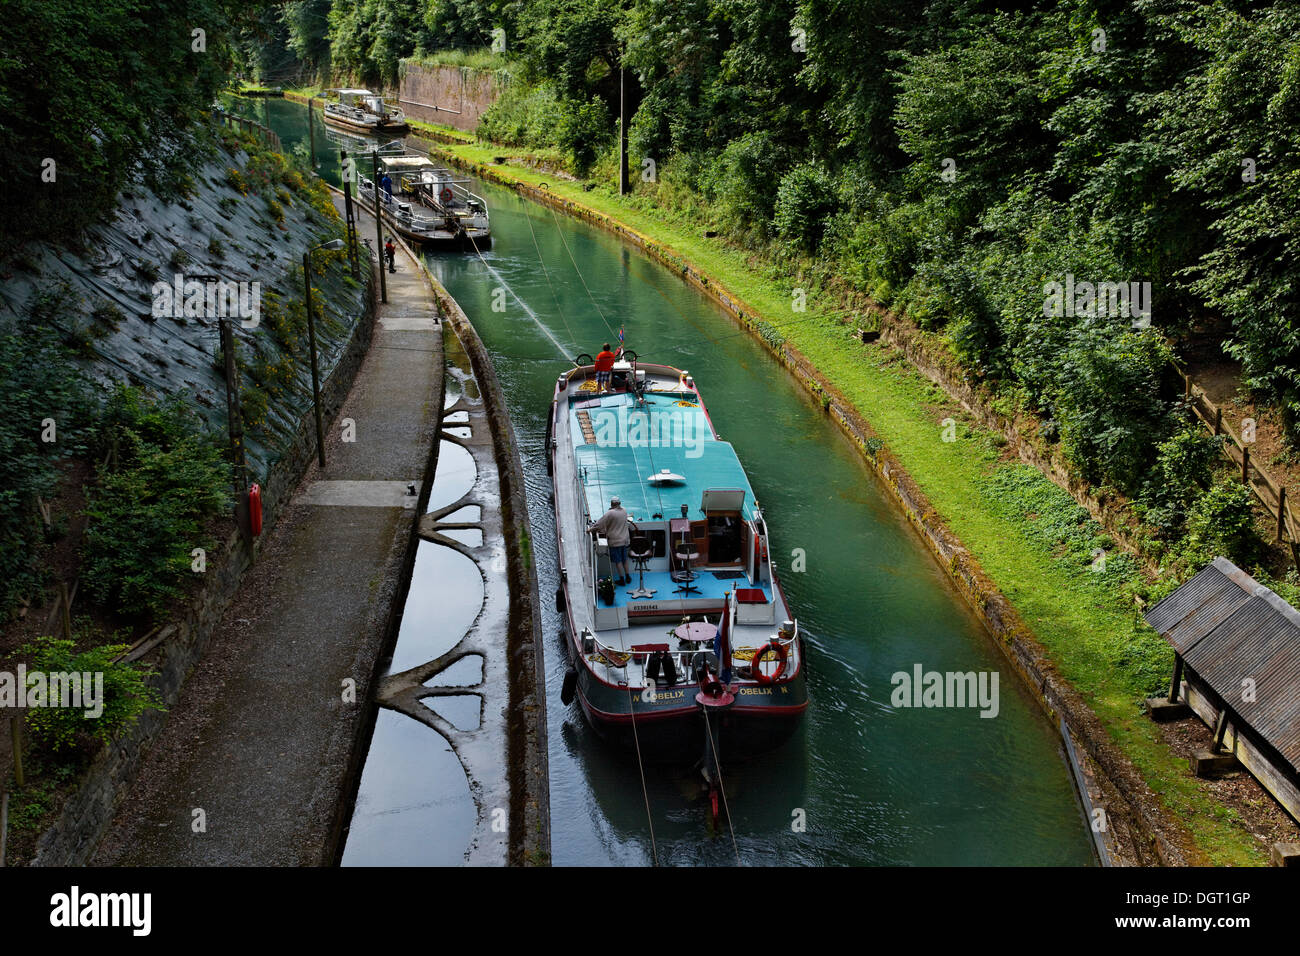 Tunnel of Riqueval for the Canal of Saint-Quentin, the towboat travels along a chain and can pull multiple ships through the - Stock Image